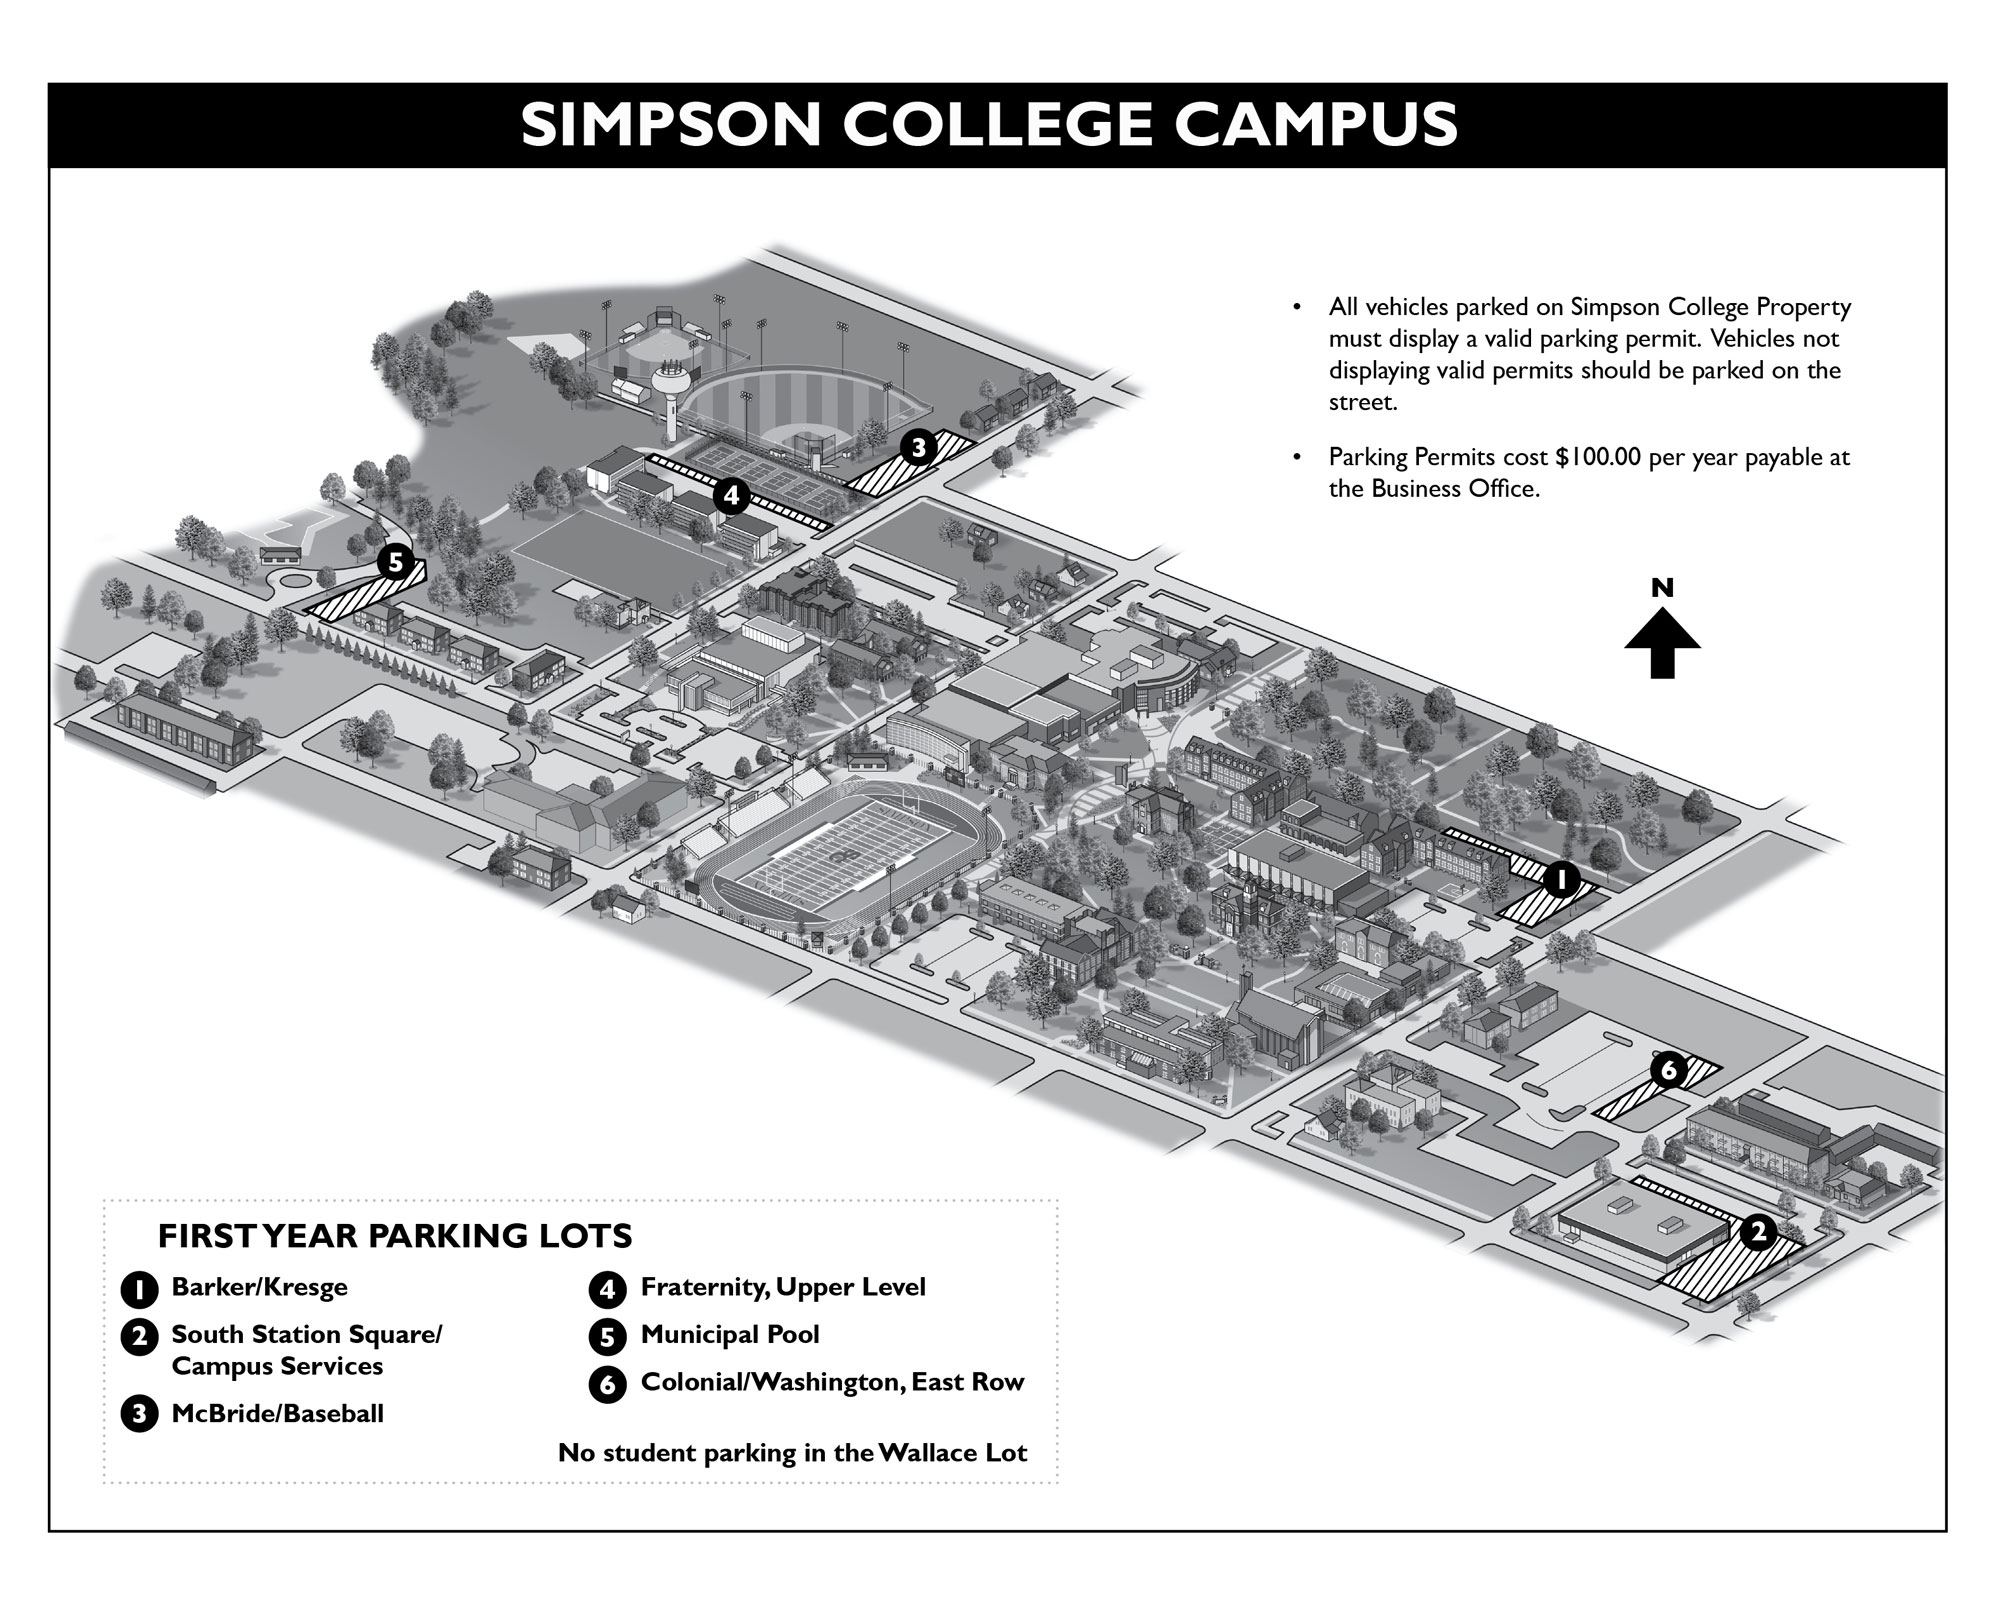 2018 Campus Parking Map